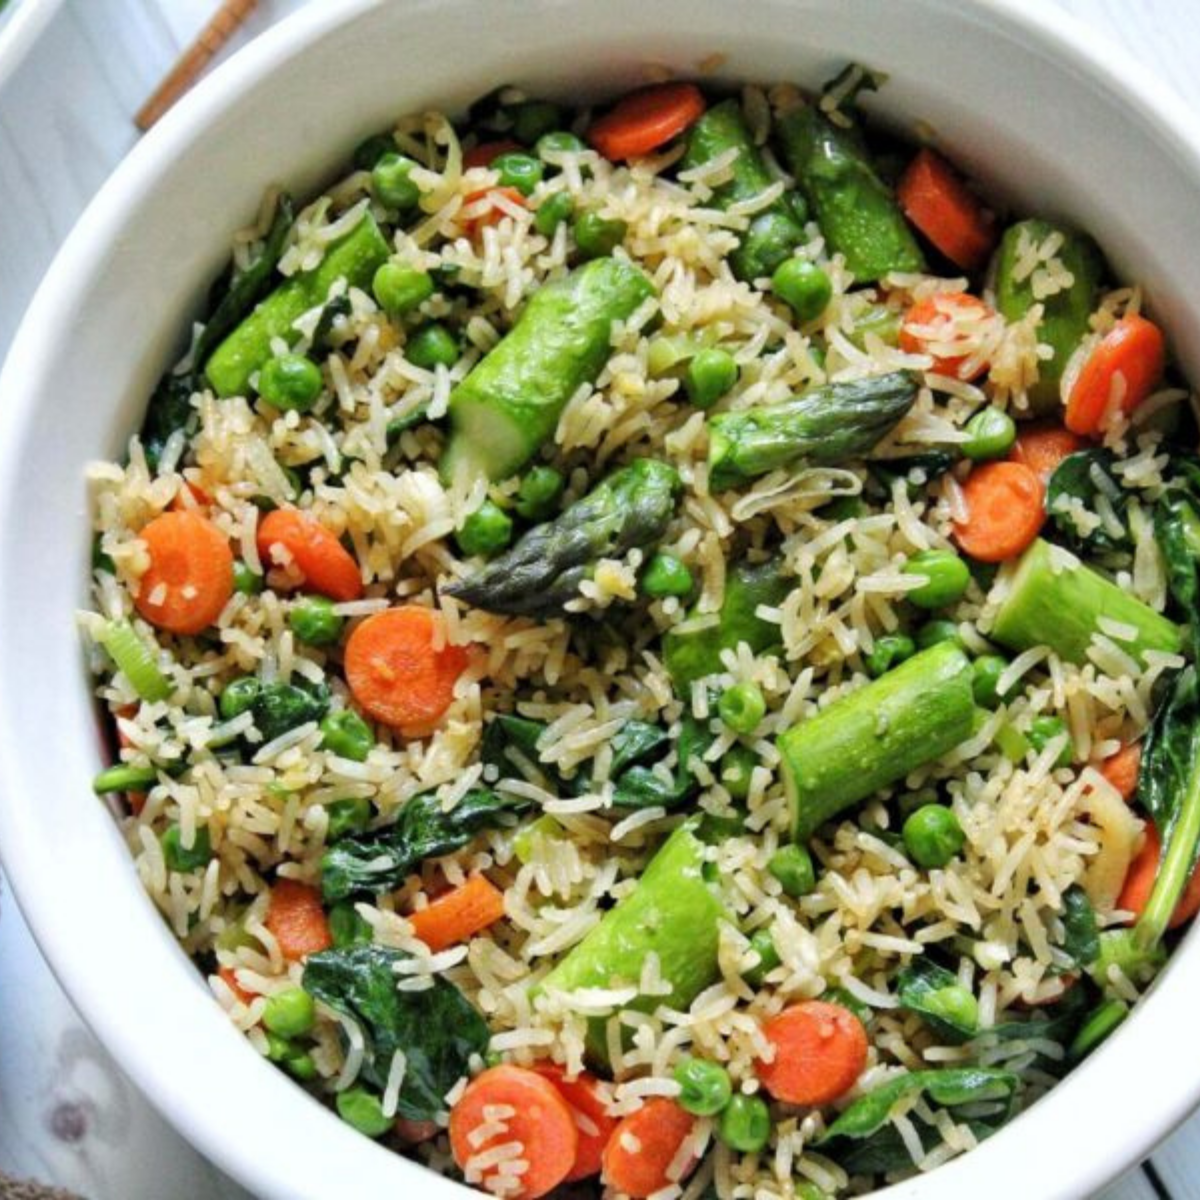 Spring fried rice with asparagus, carrots, and peas.